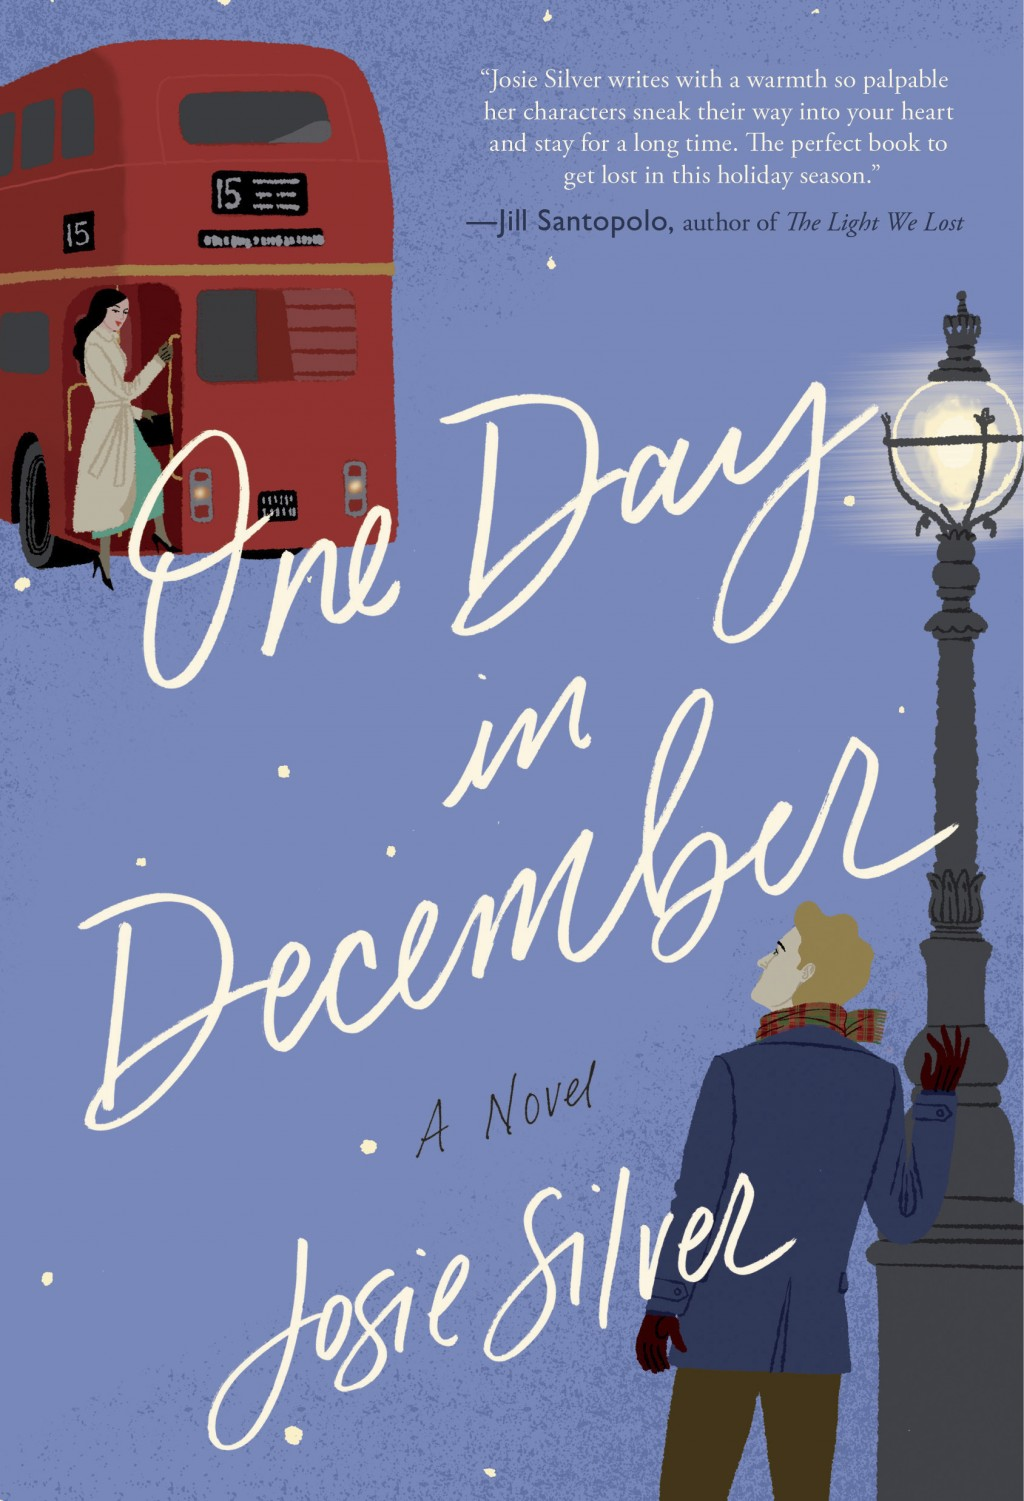 """This cover image released by Broadway Books shows """"One Day in December,"""" a novel by Josie Silver. (Broadway Books via AP)"""